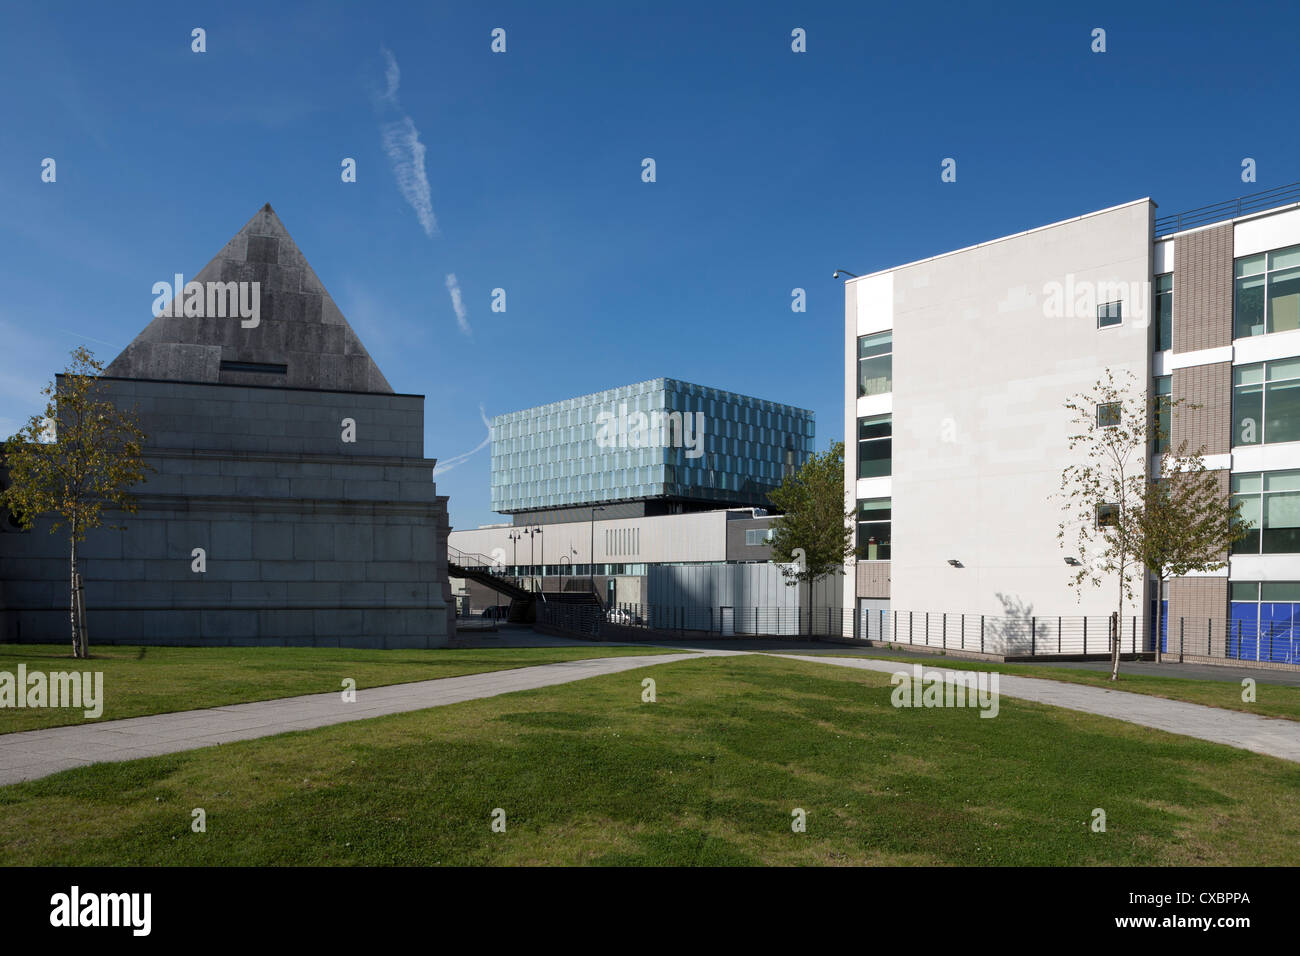 University of Liverpool Faculty of Engineering Building - Stock Image